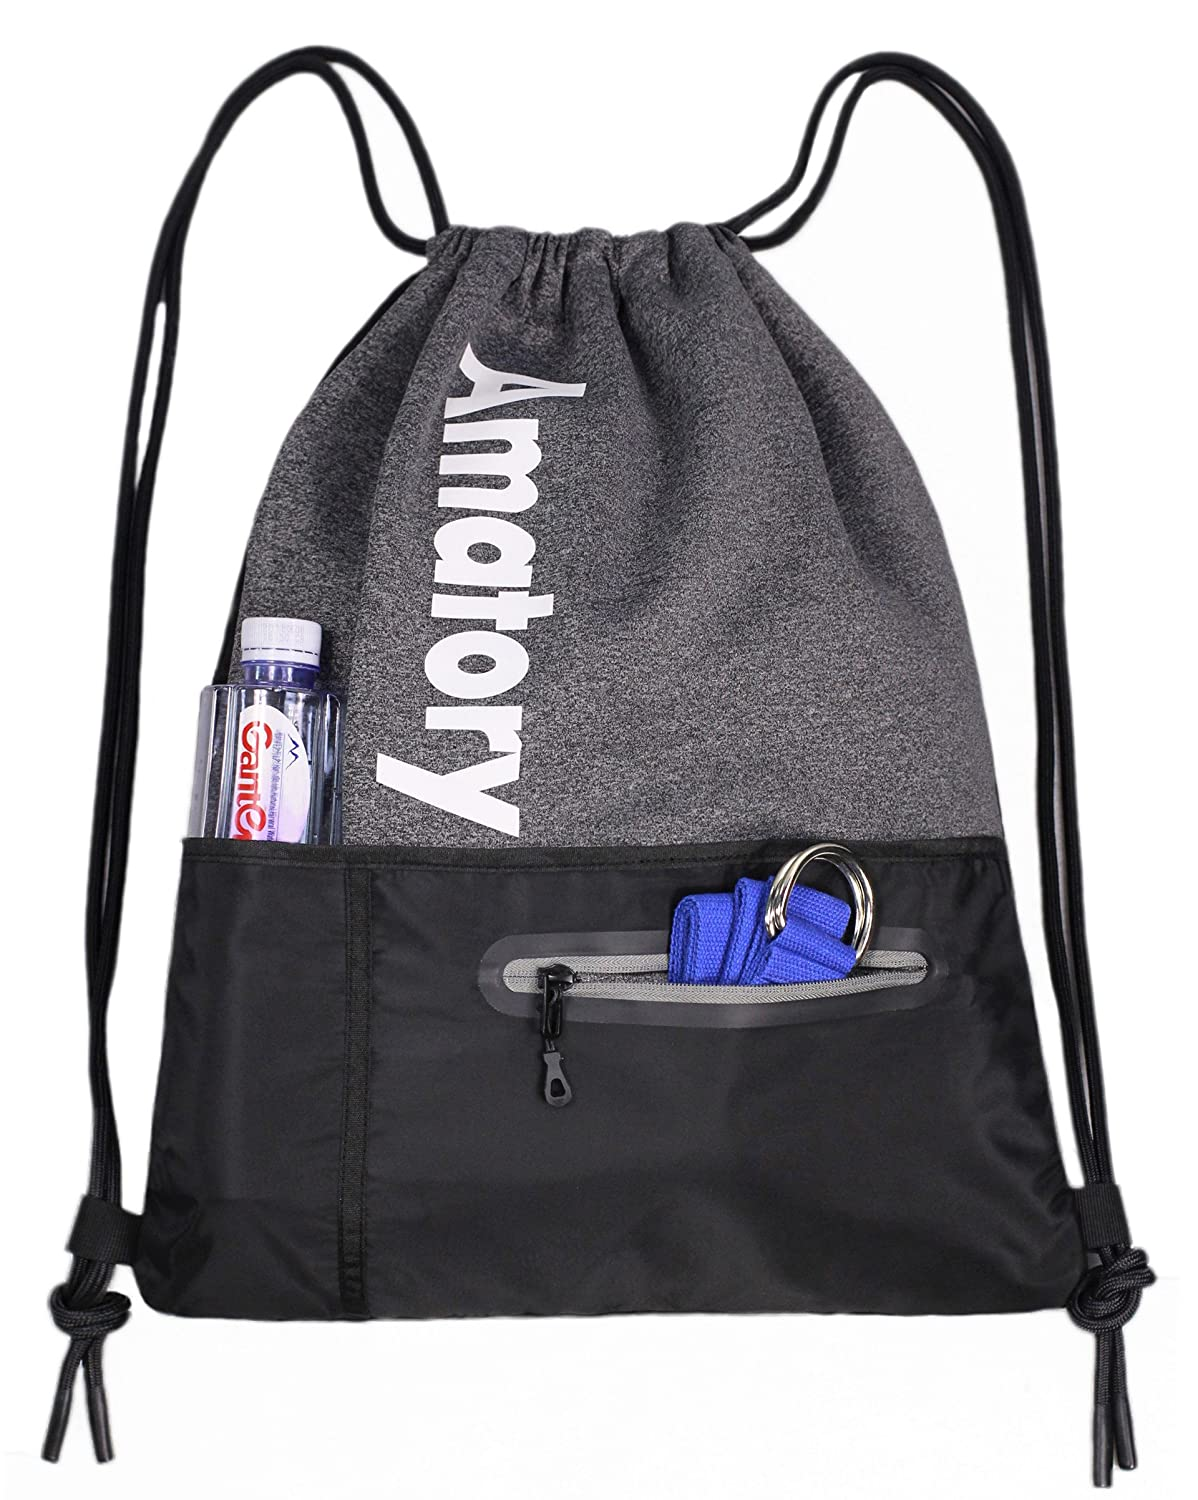 Drawstring Backpack Sports Athletic Cinch Sack Gymsack Sackpack Gym String Bag US-1802-Purple